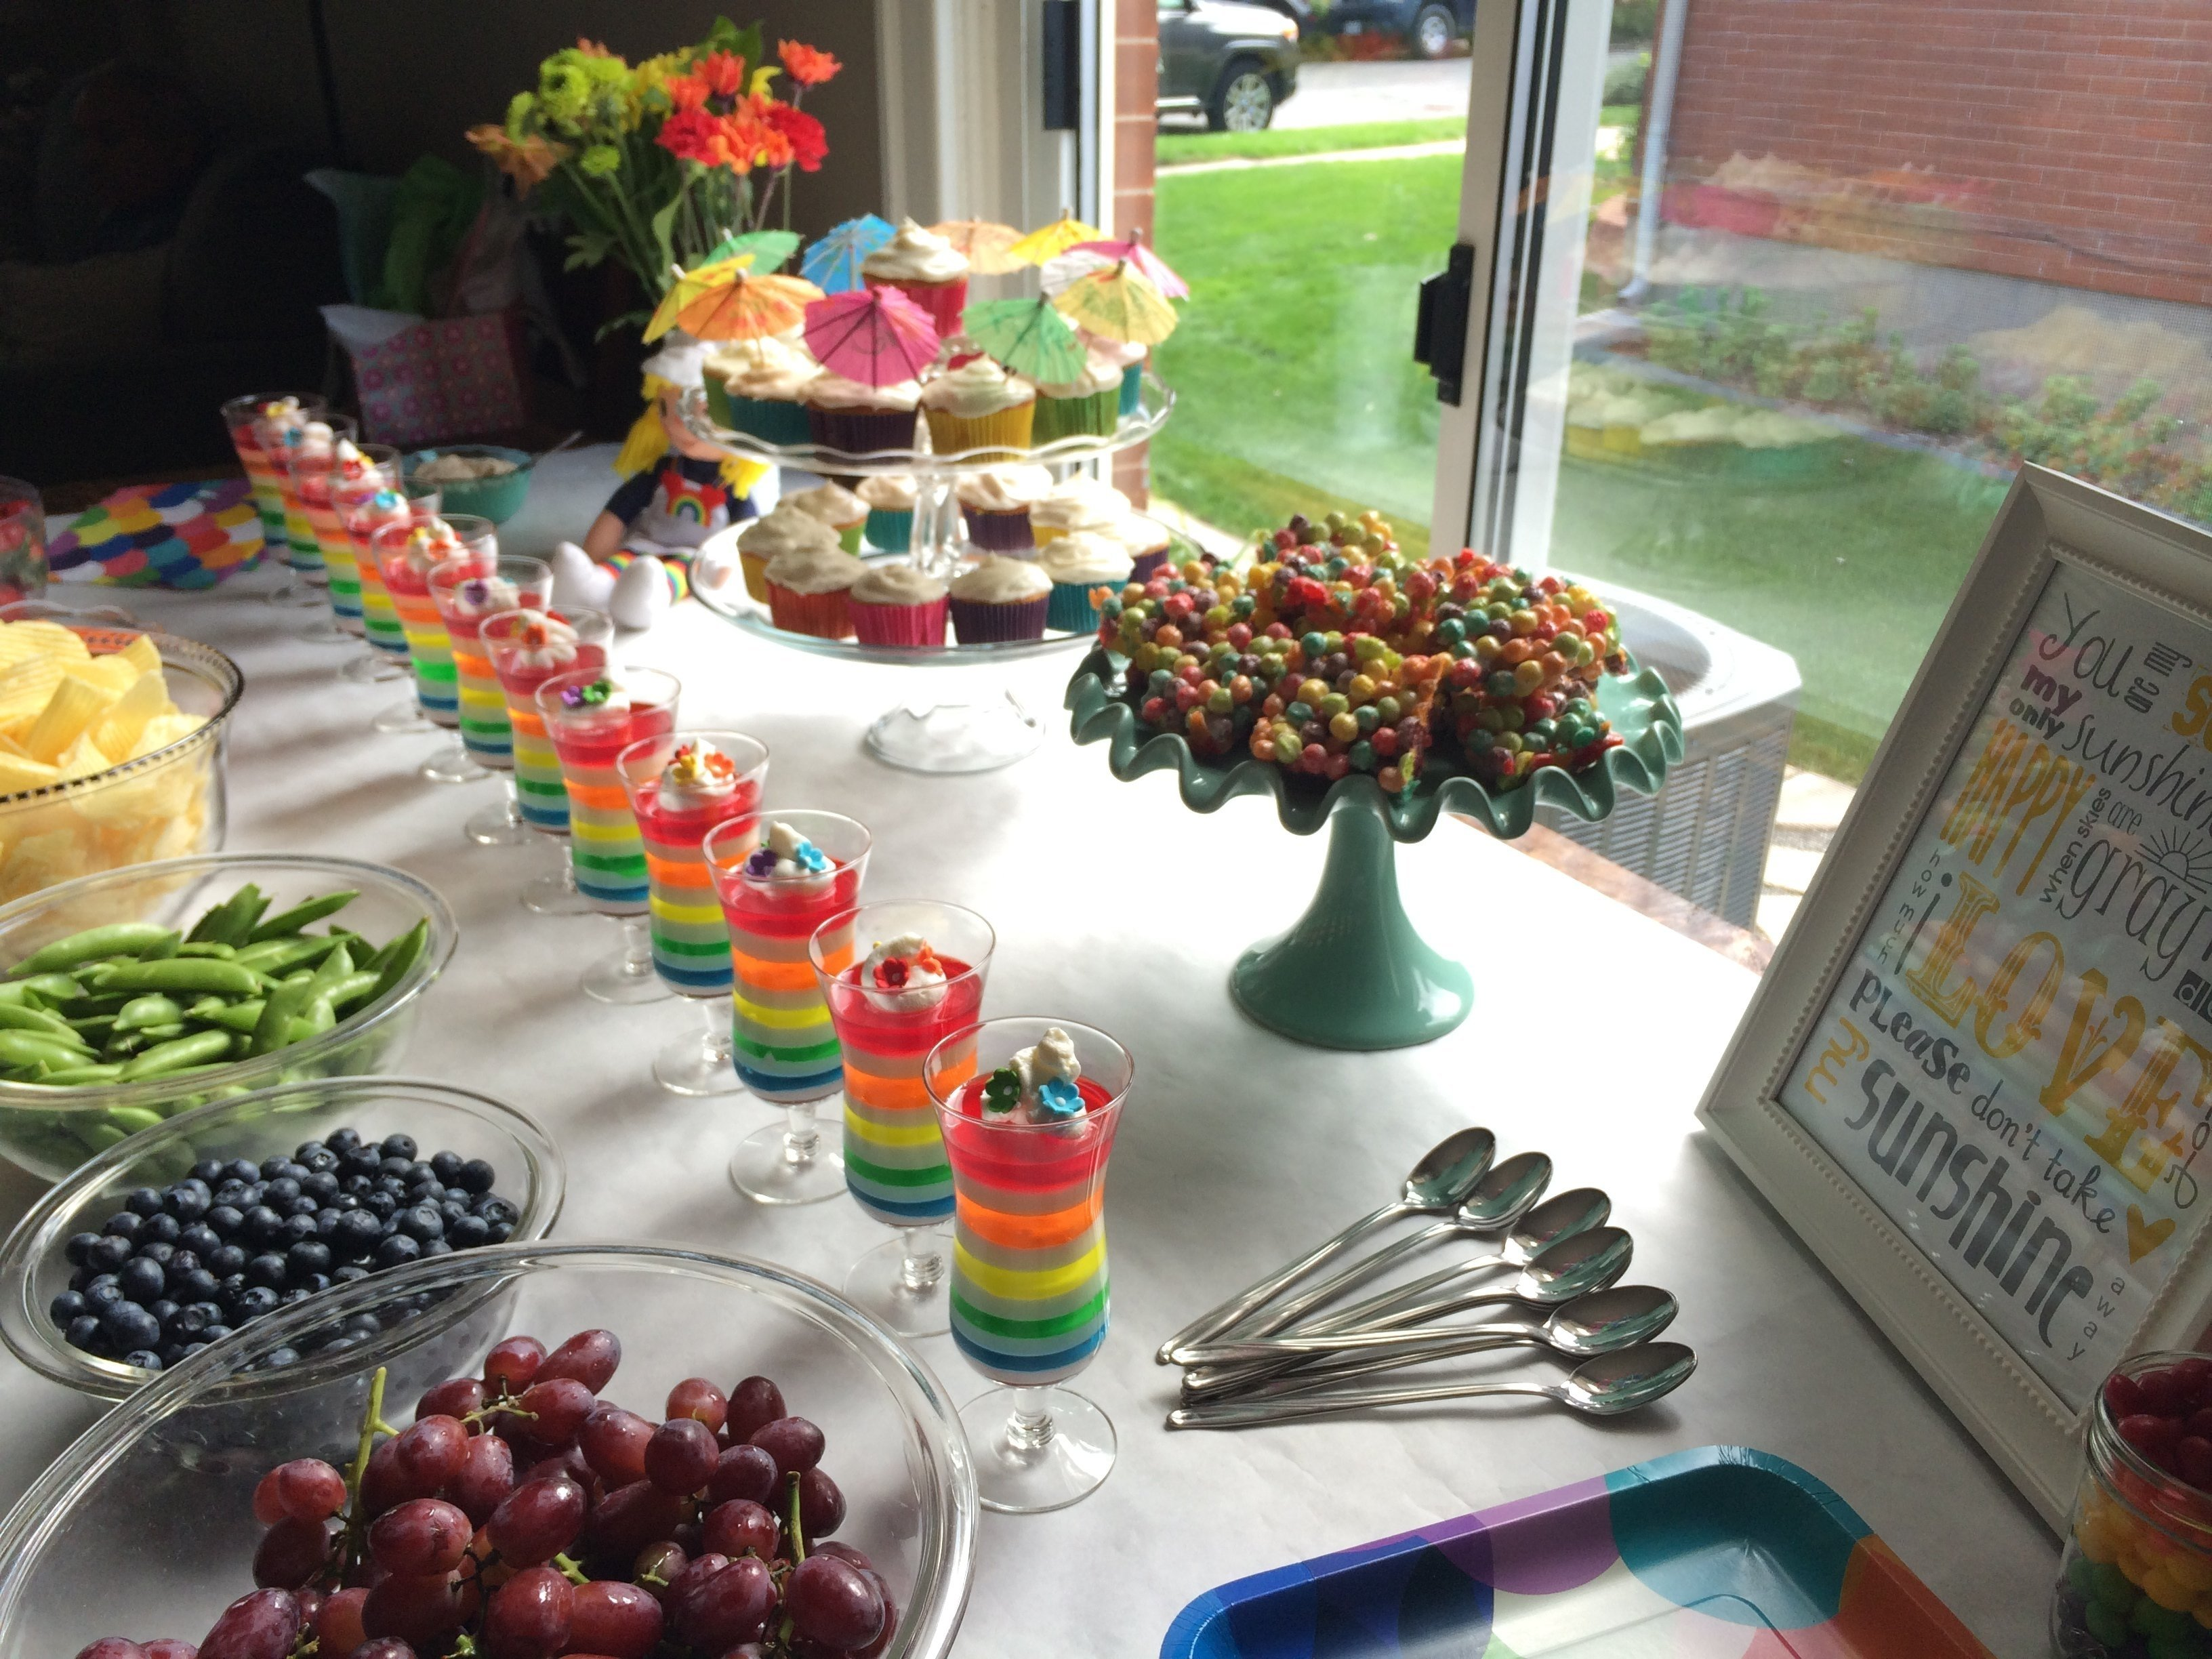 10 Trendy 4 Year Old Birthday Ideas easy birthday party ideas for 7 year old boy at home attractive 10